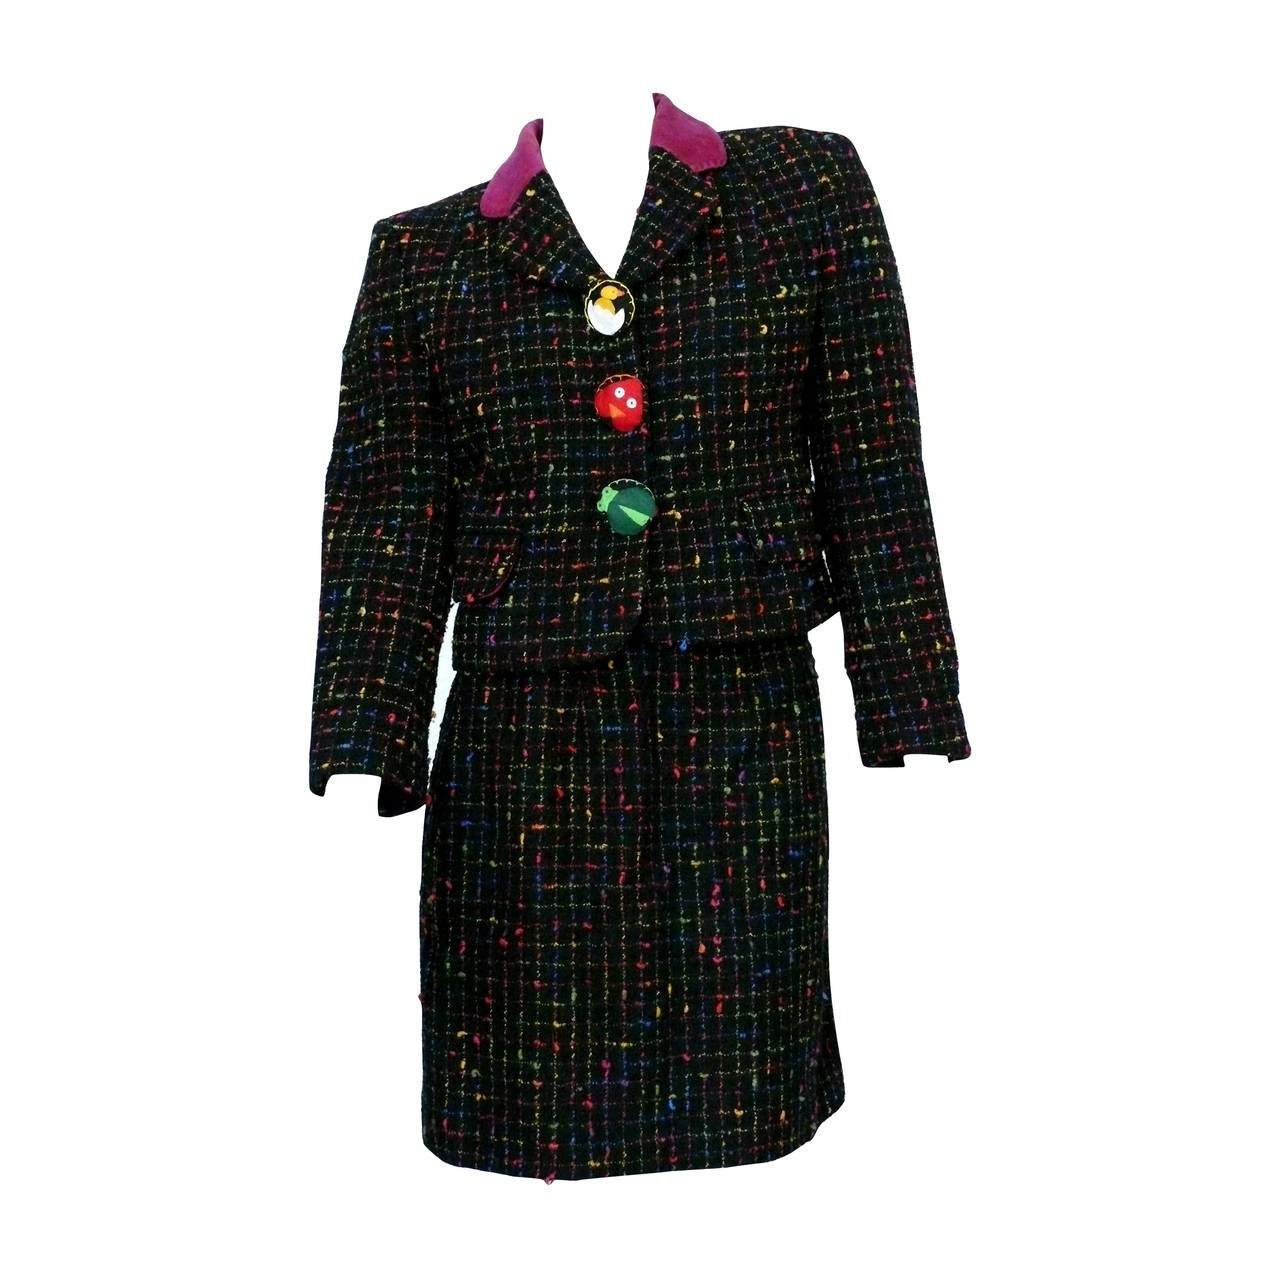 770760185d Moschino Vintage Multicolored Tweed Suit